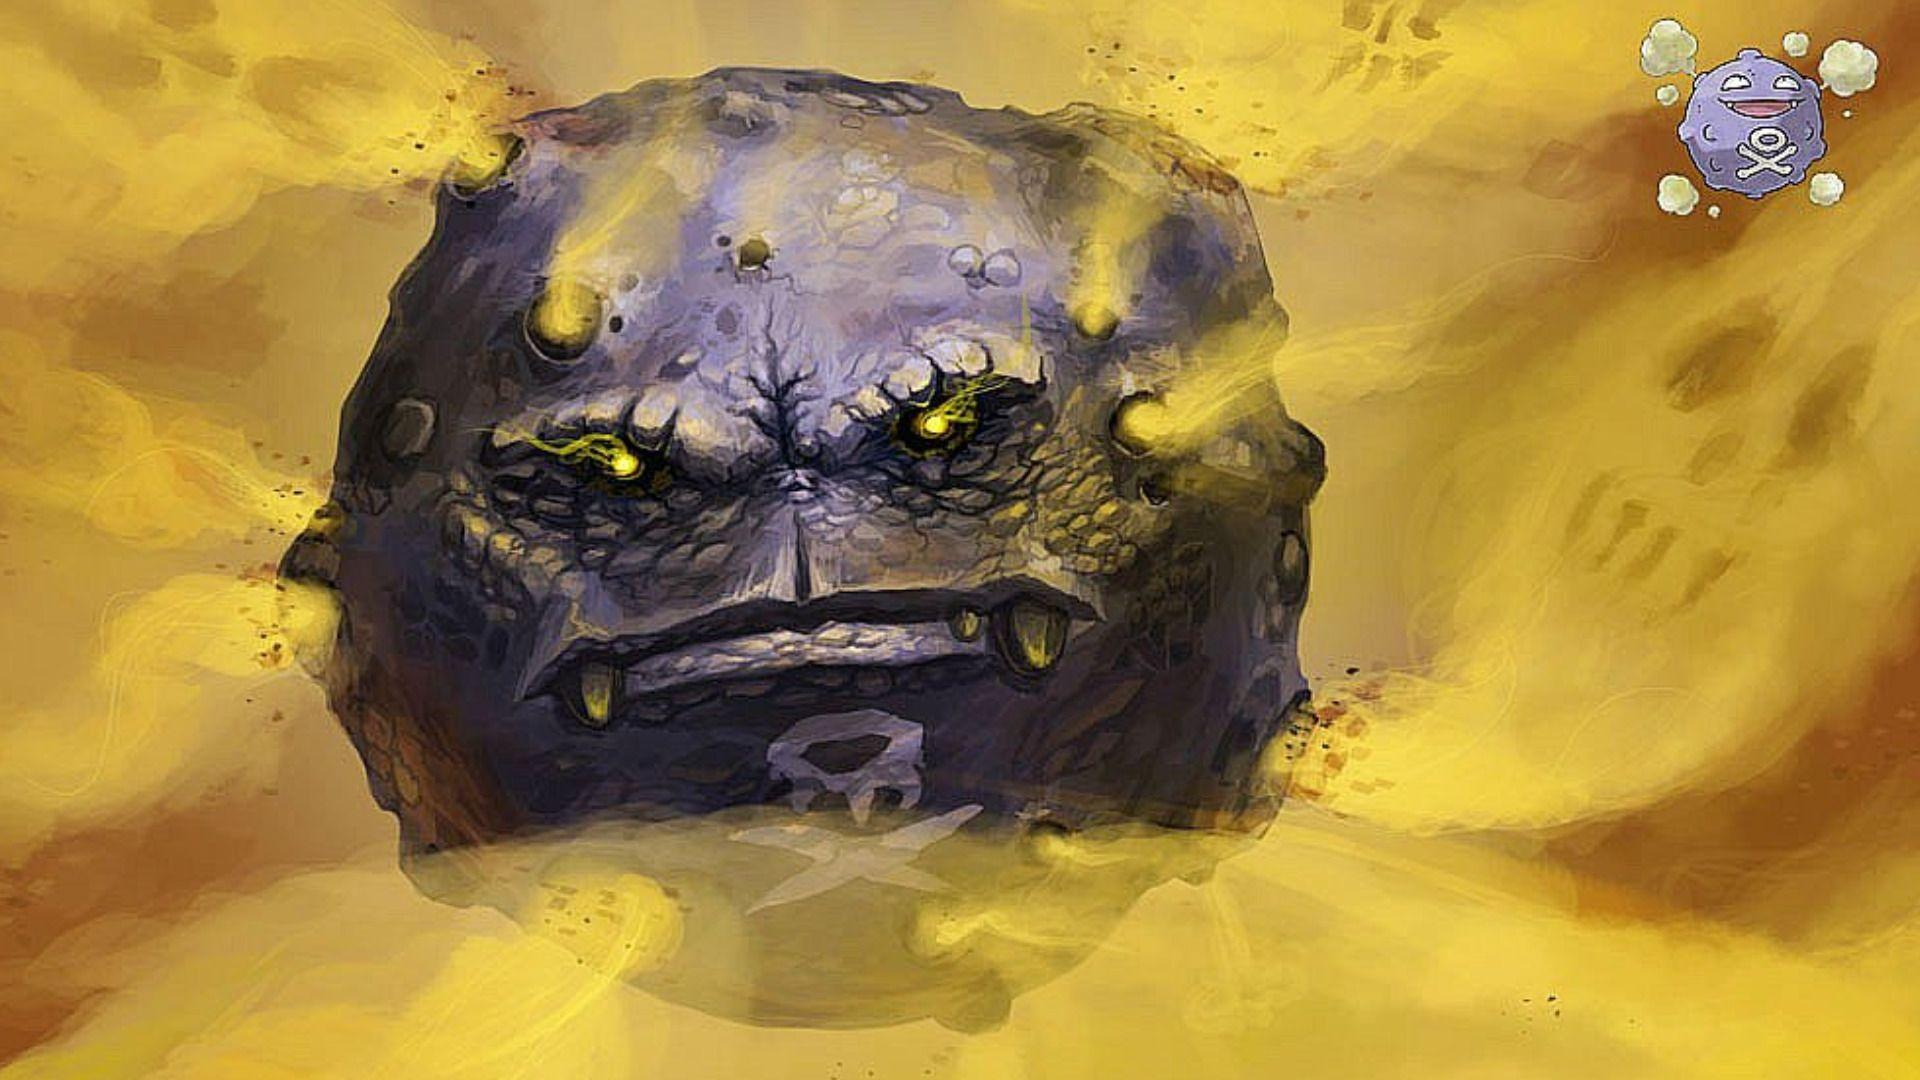 Realistic Koffing Full HD Wallpapers and Backgrounds Image